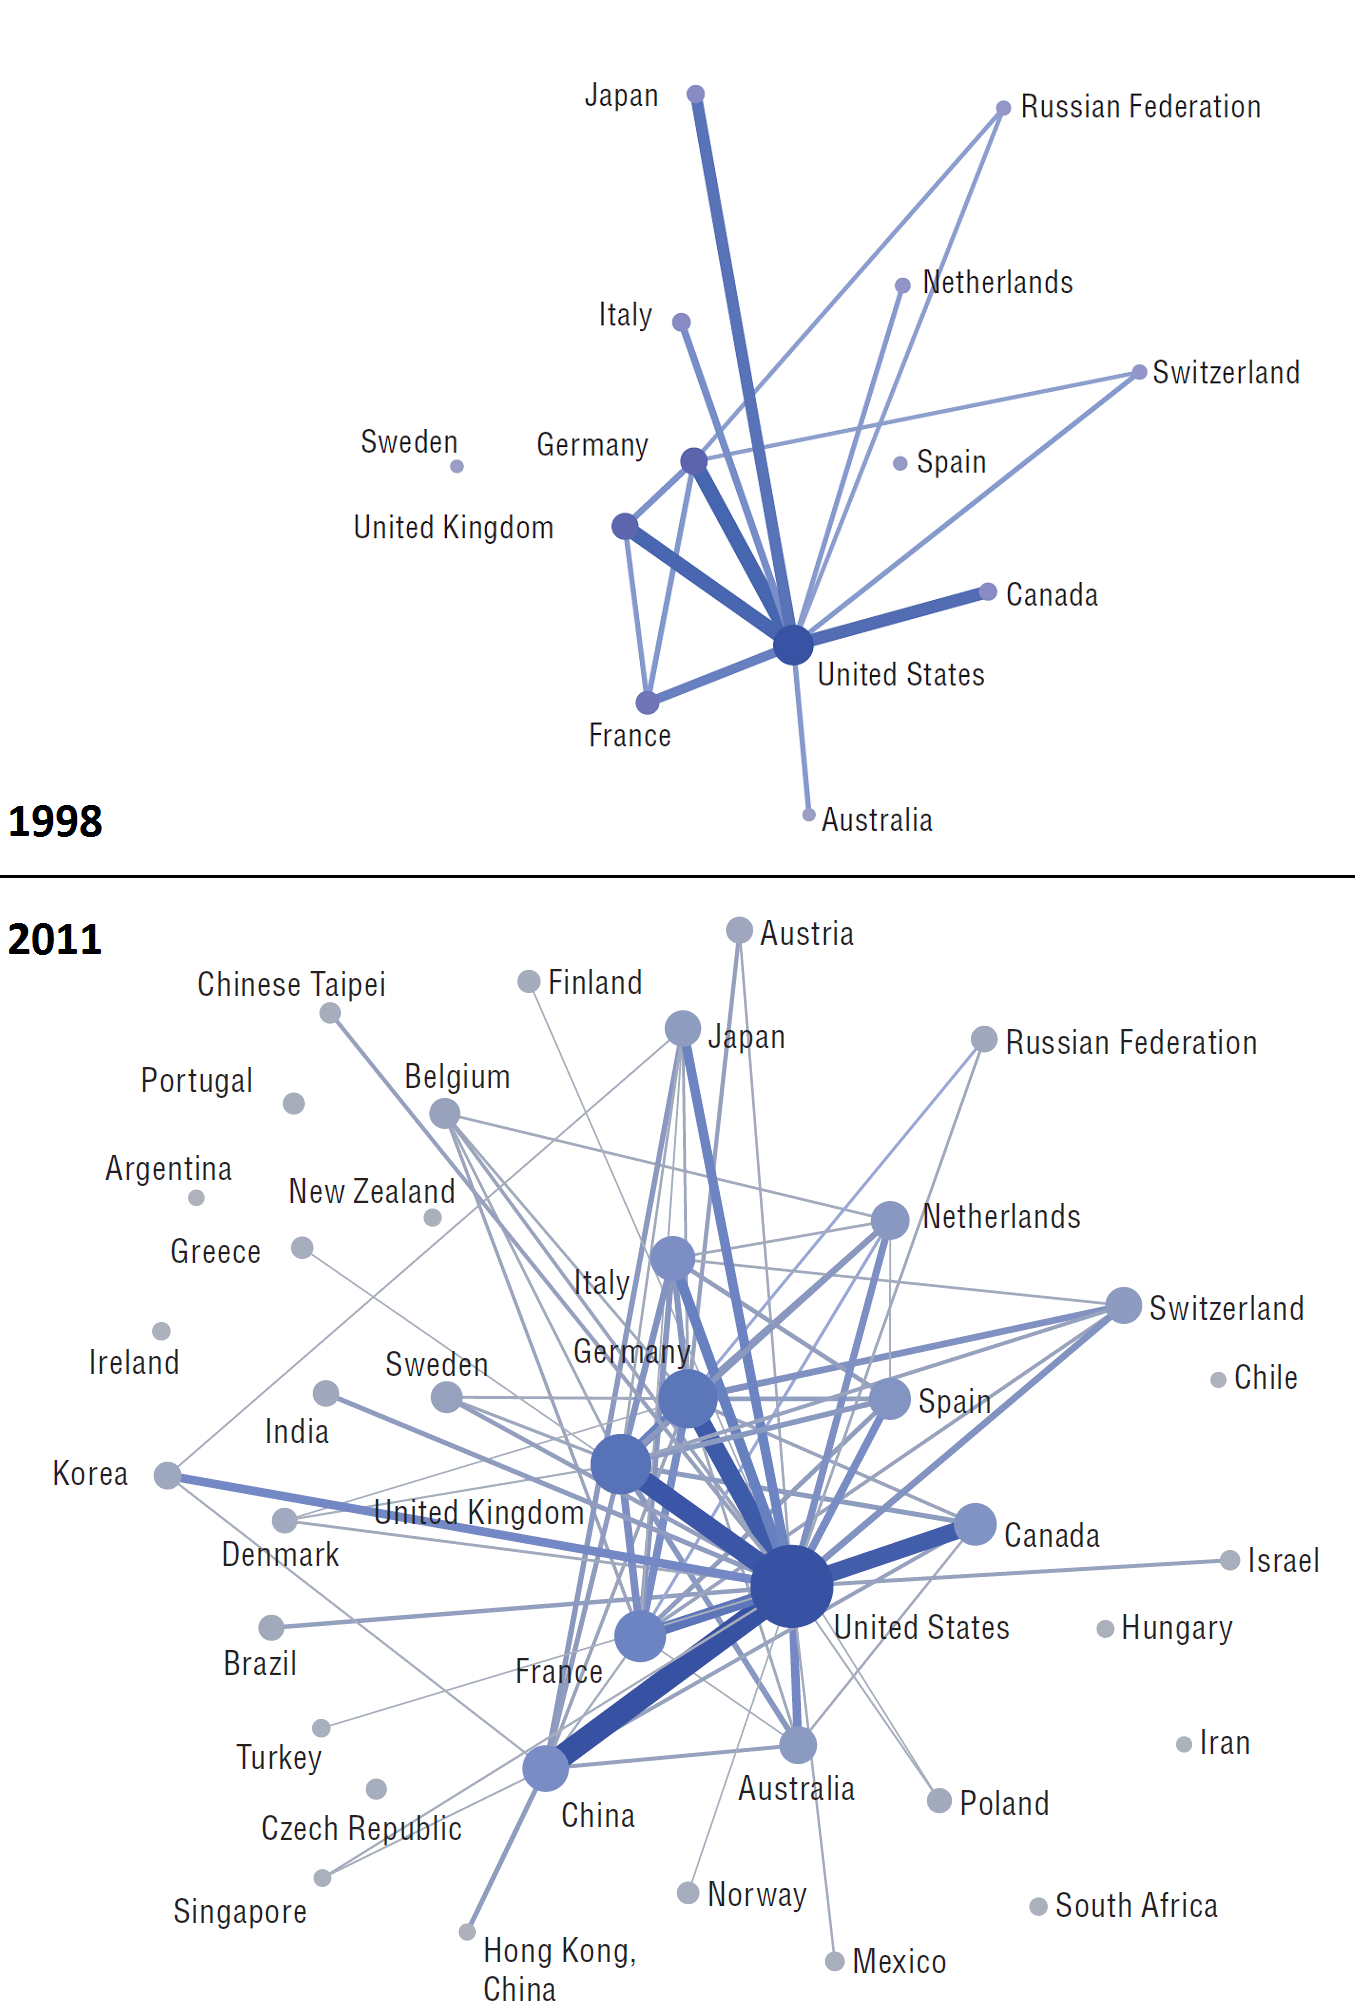 International collaboration networks in science